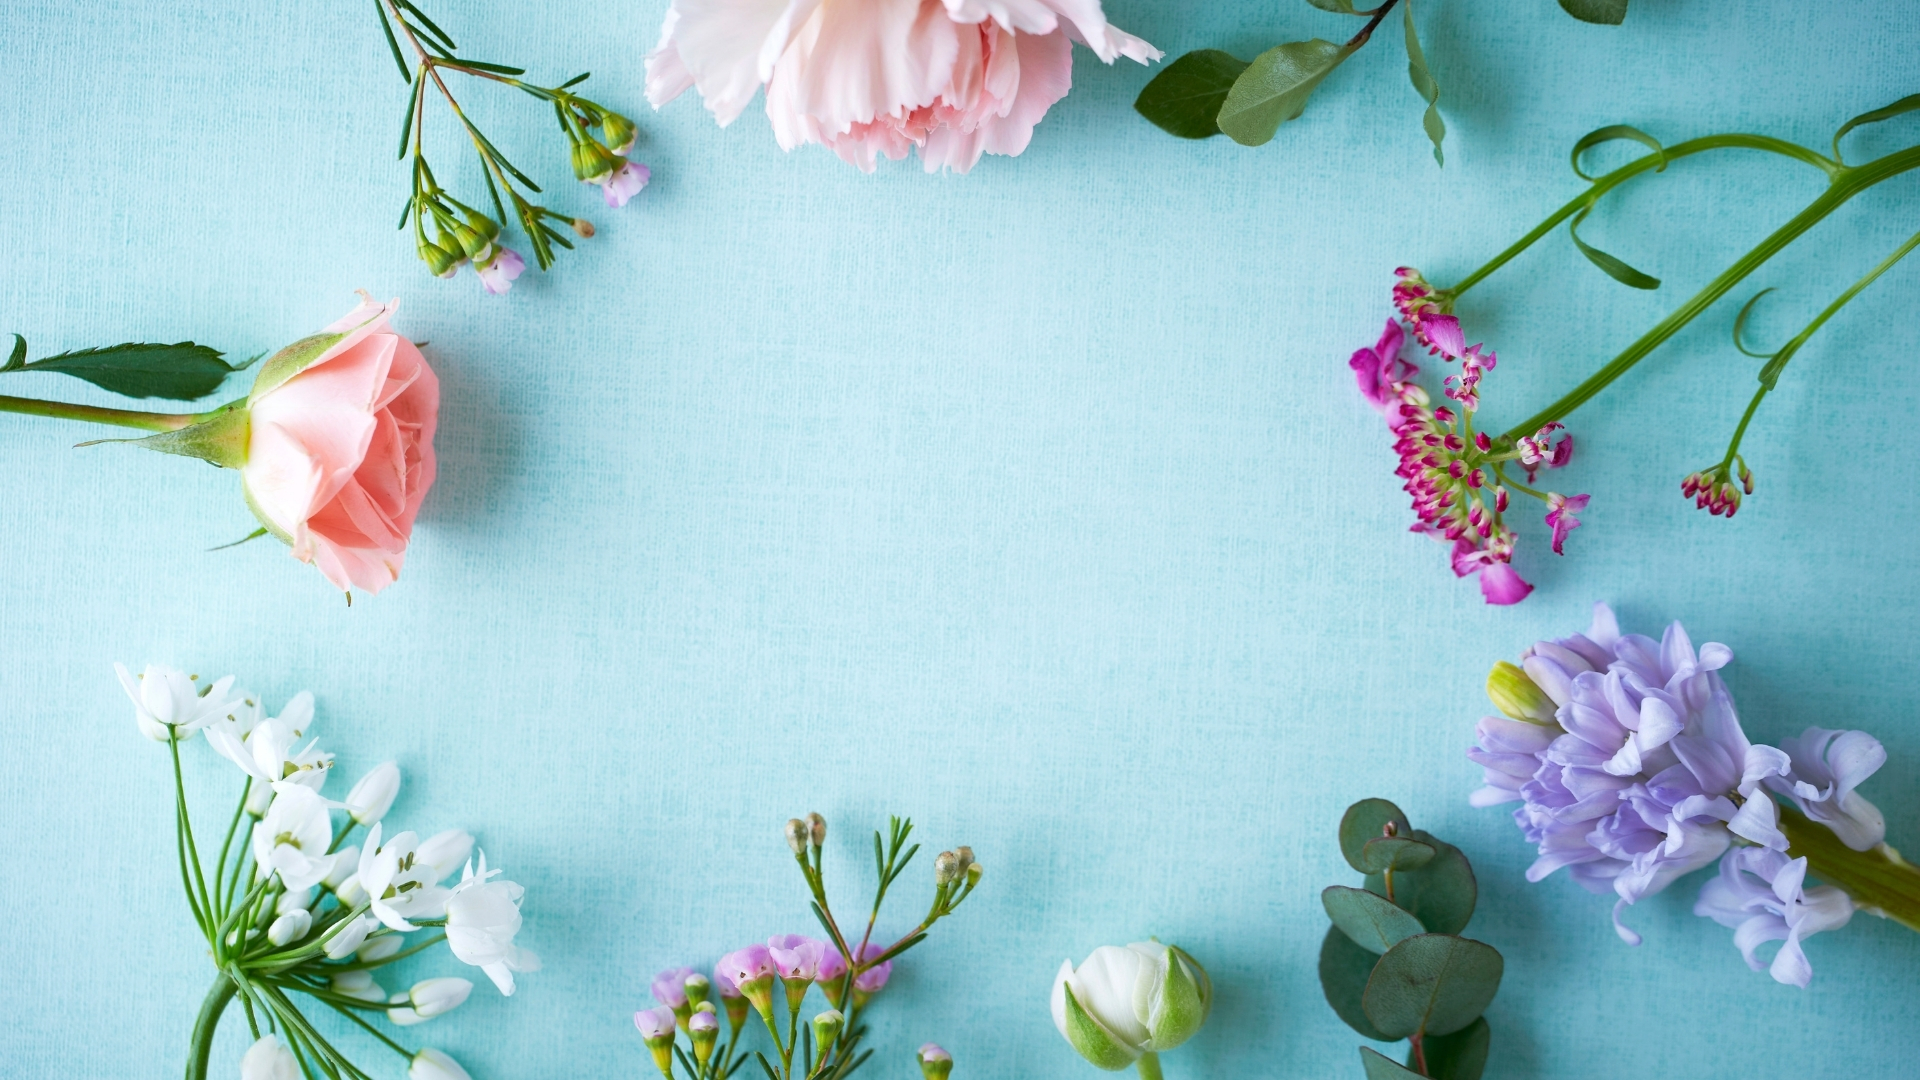 wallpapers of flower